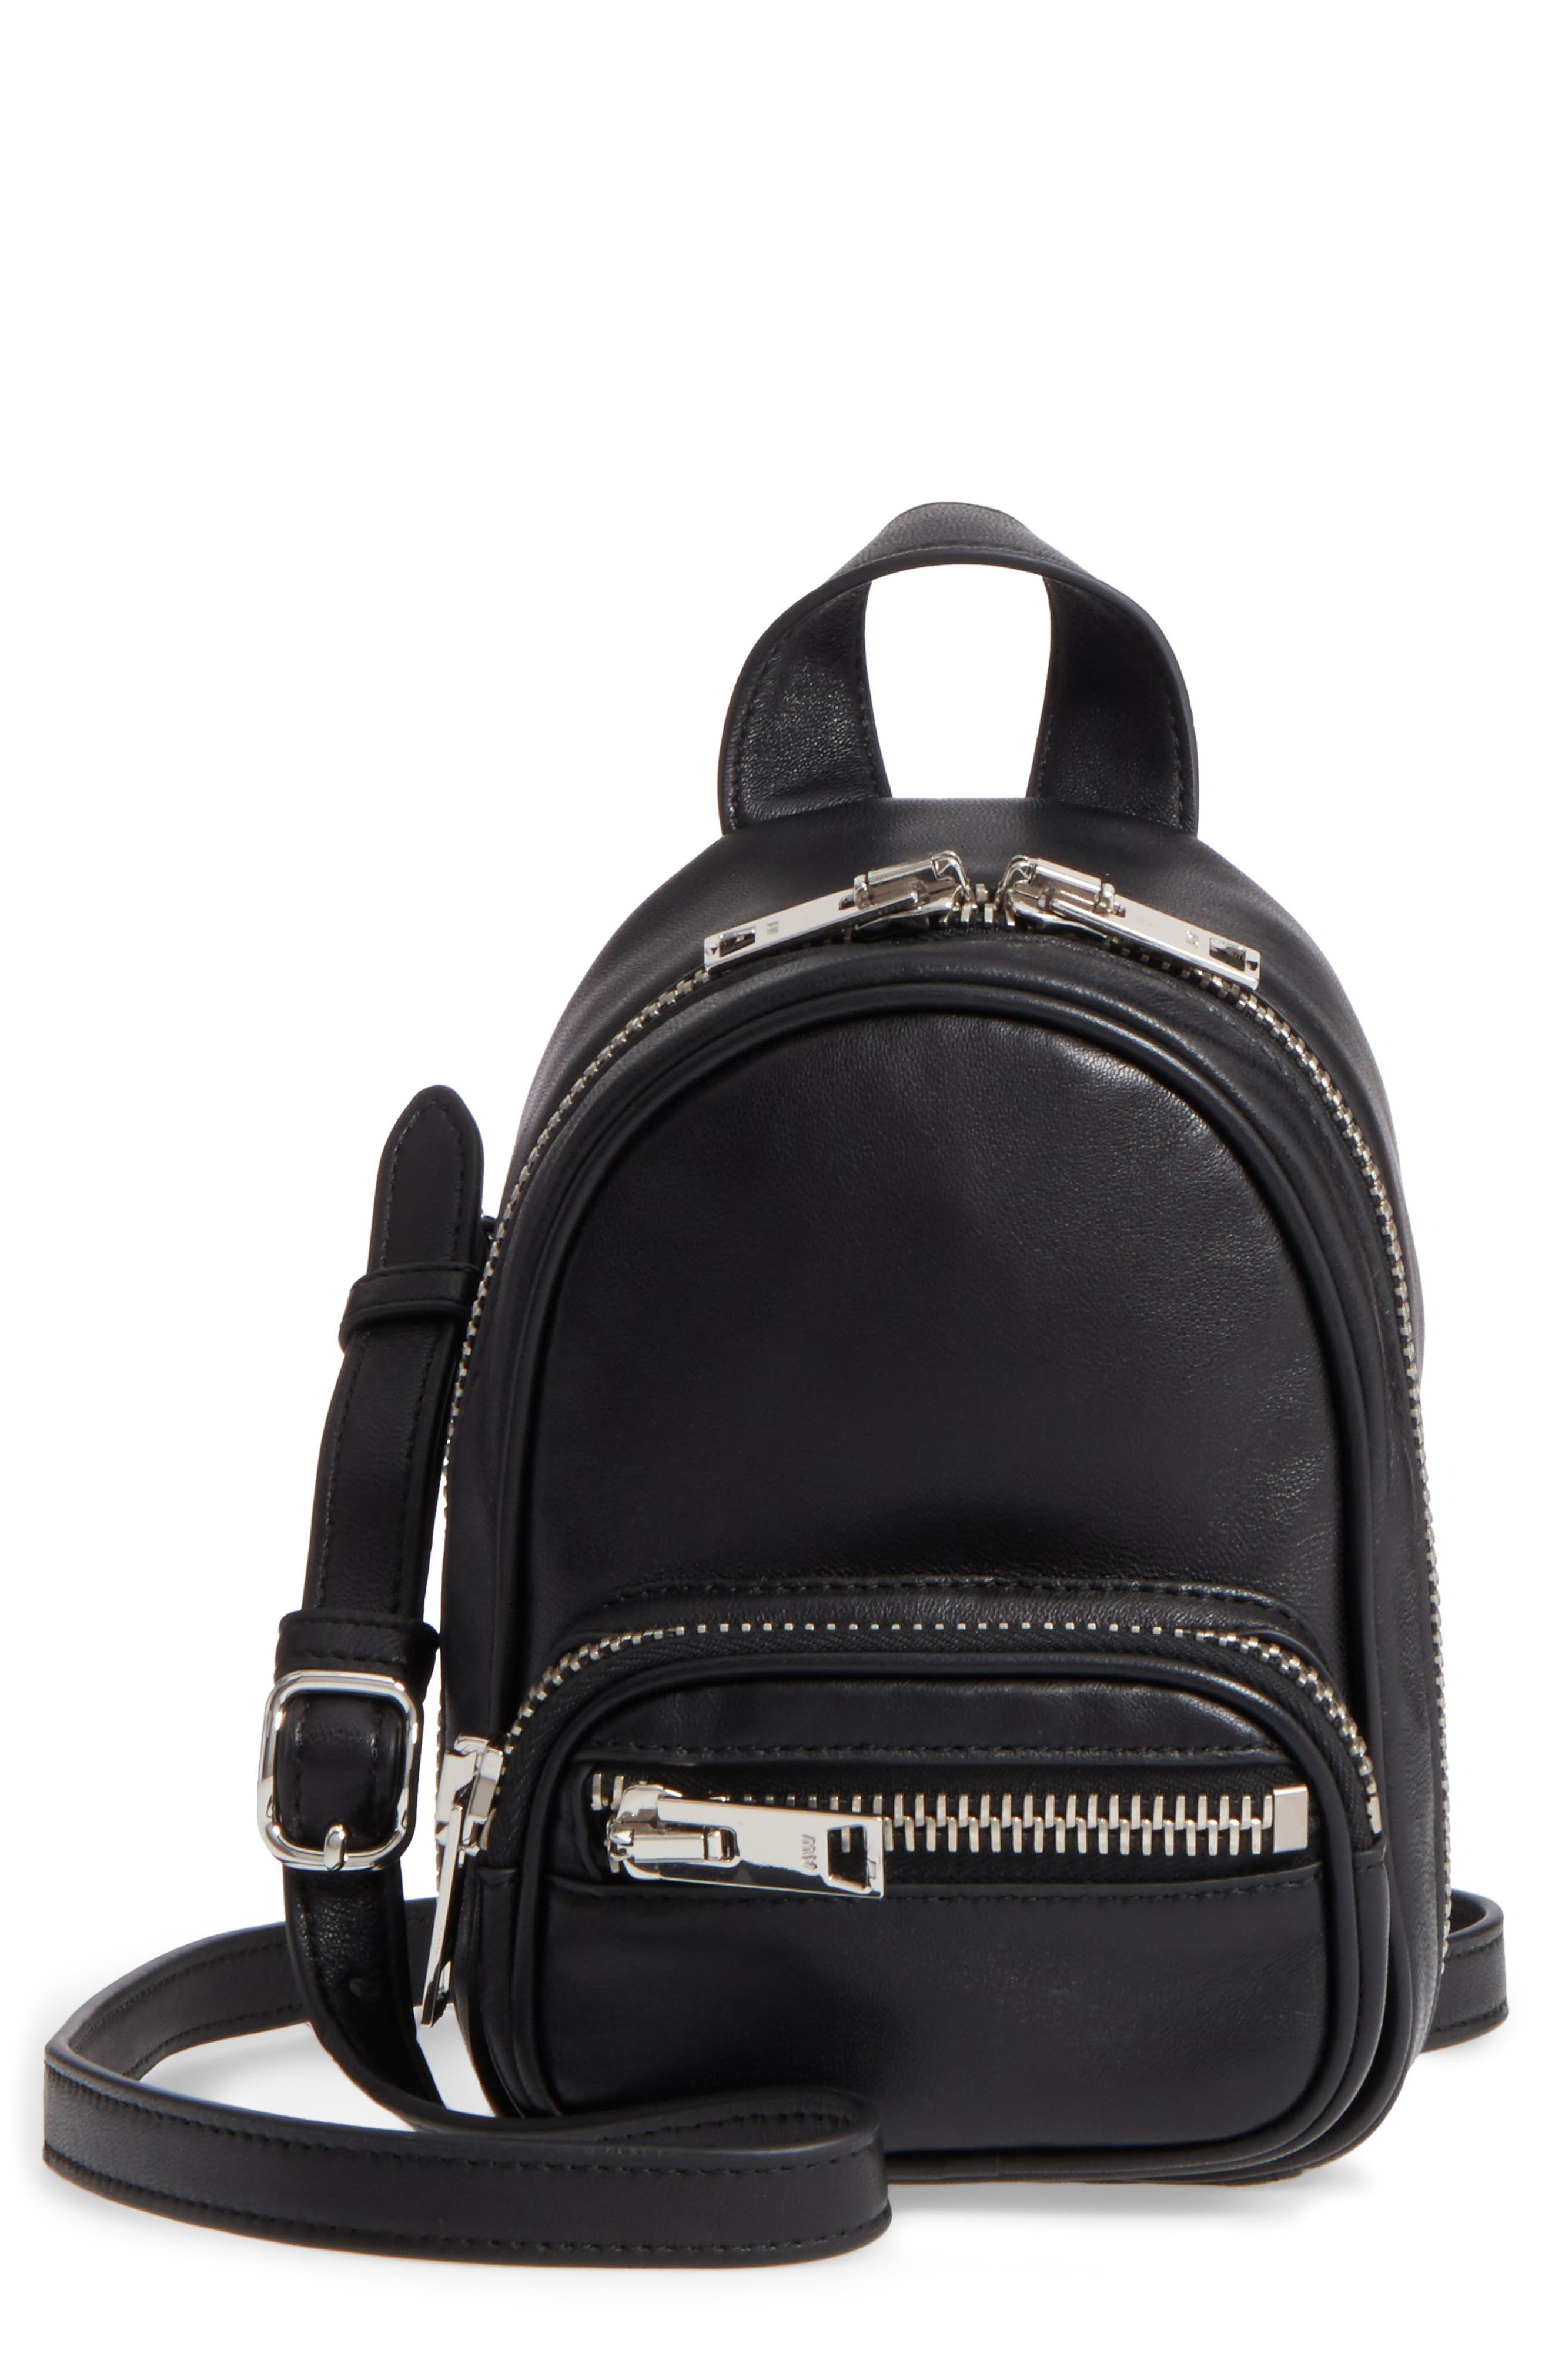 Alternate Image 1 Selected - Alexander Wang Mini Attica Leather Backpack Shaped Crossbody Bag